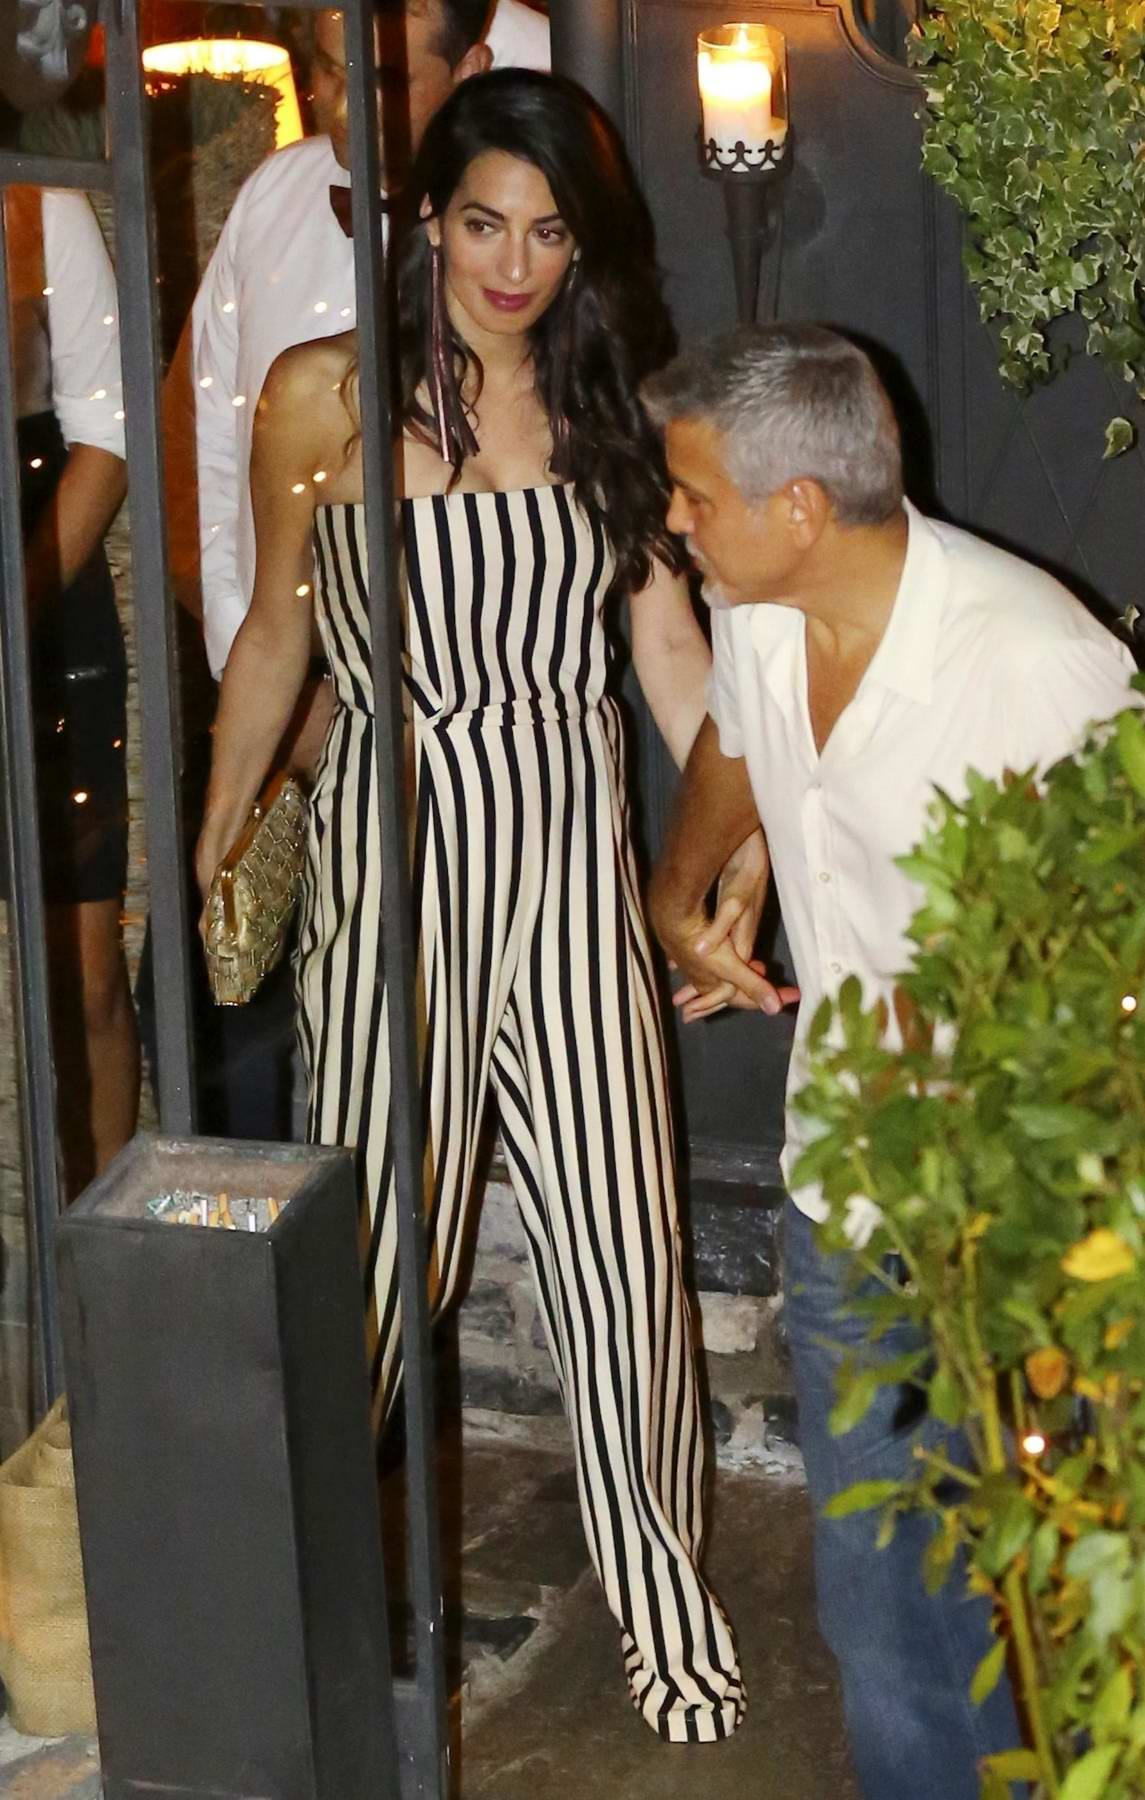 Amal Clooney and George Clooney enjoying a romantic dinner at Gatto Nero Restaurant in Lake Como, Italy